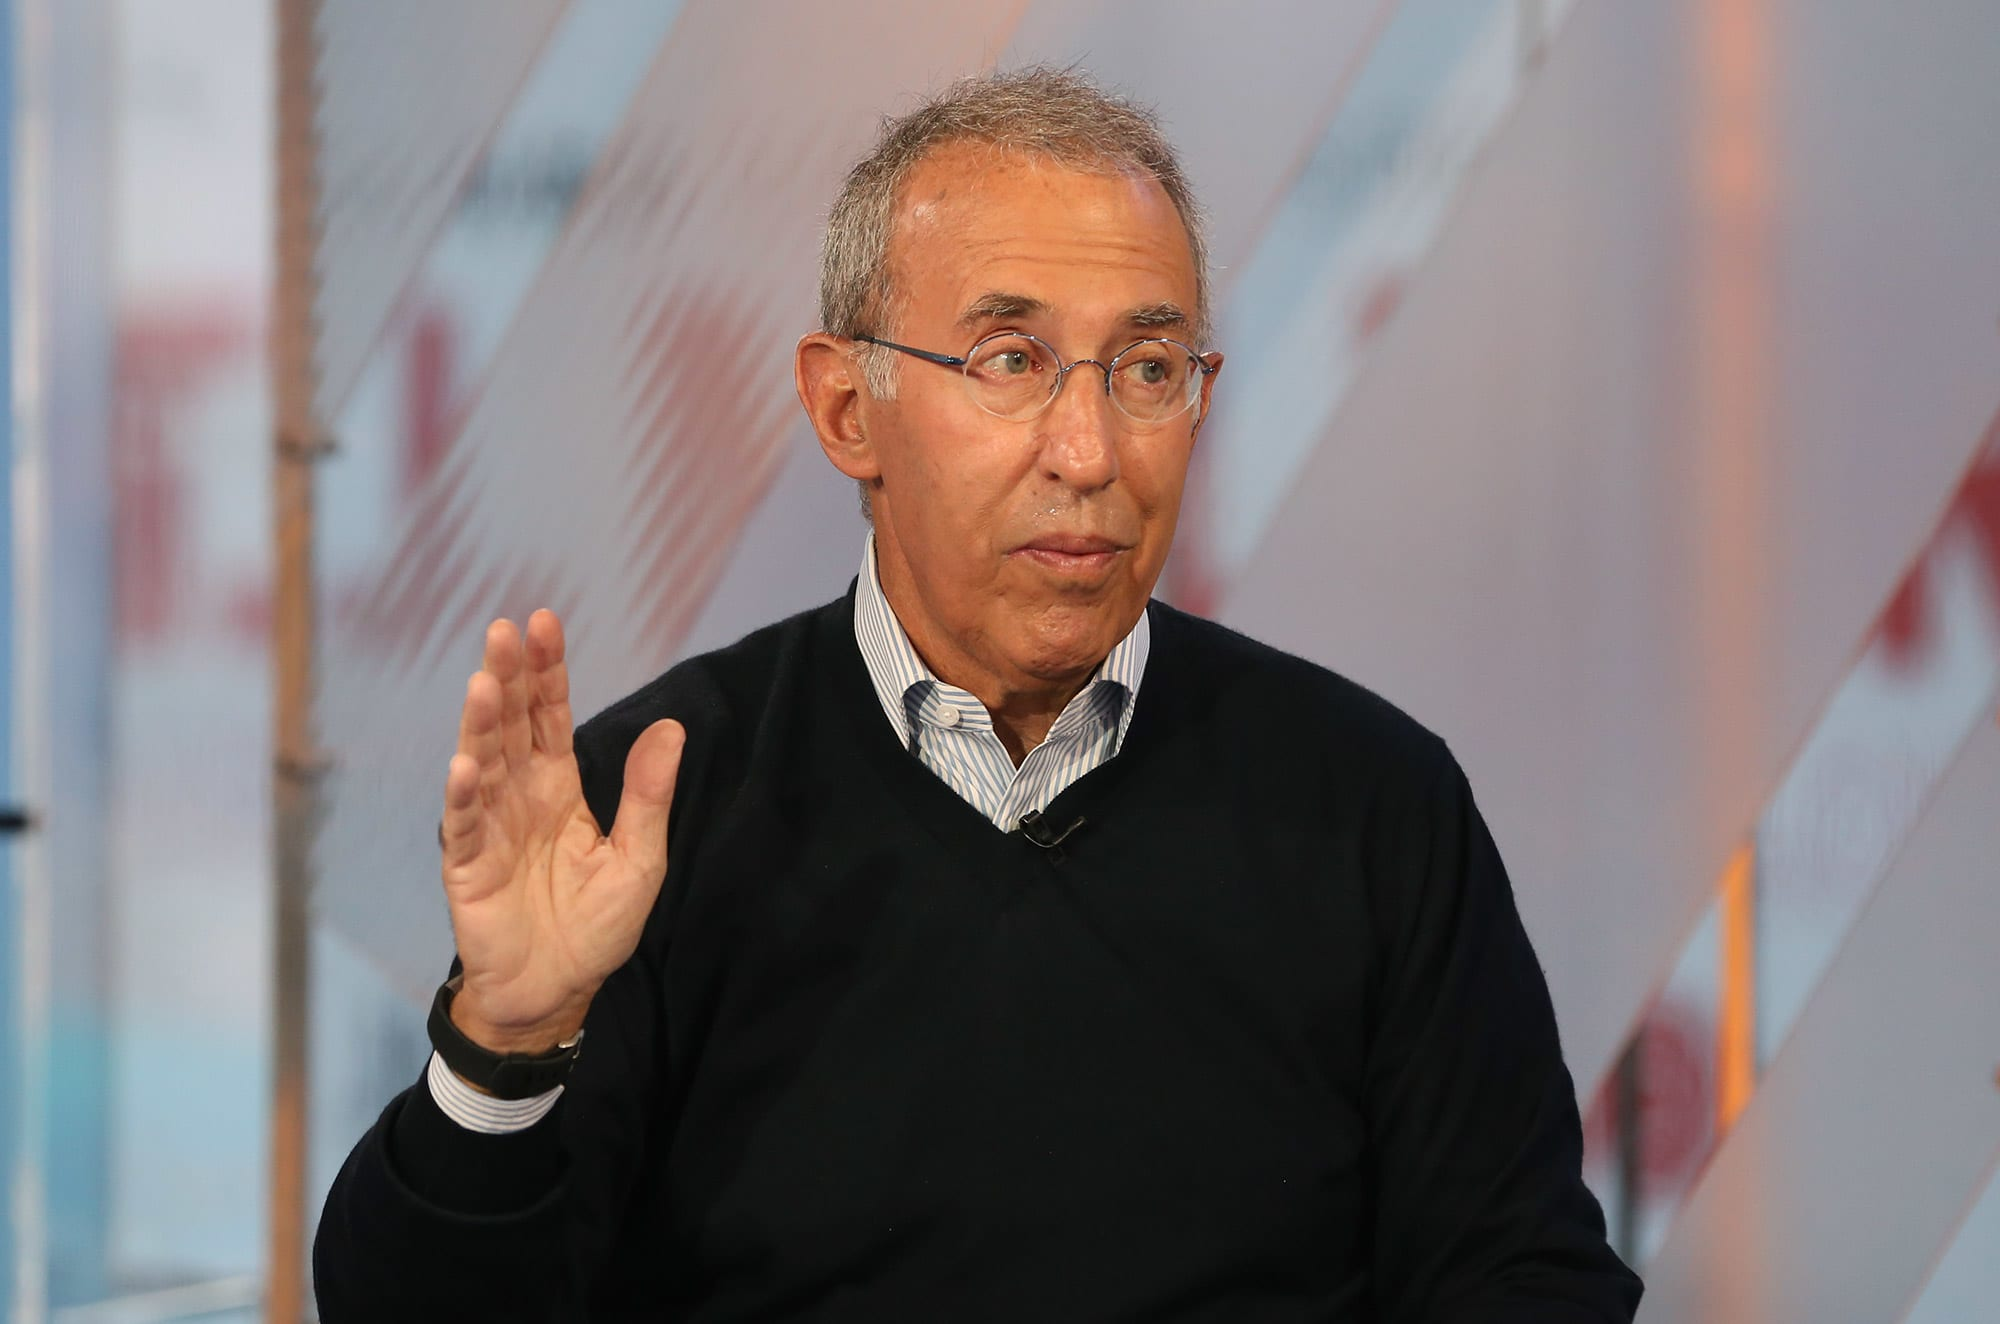 Buy-and-hold investor Ron Baron: I tripled my normal stock investments during recent wild swings